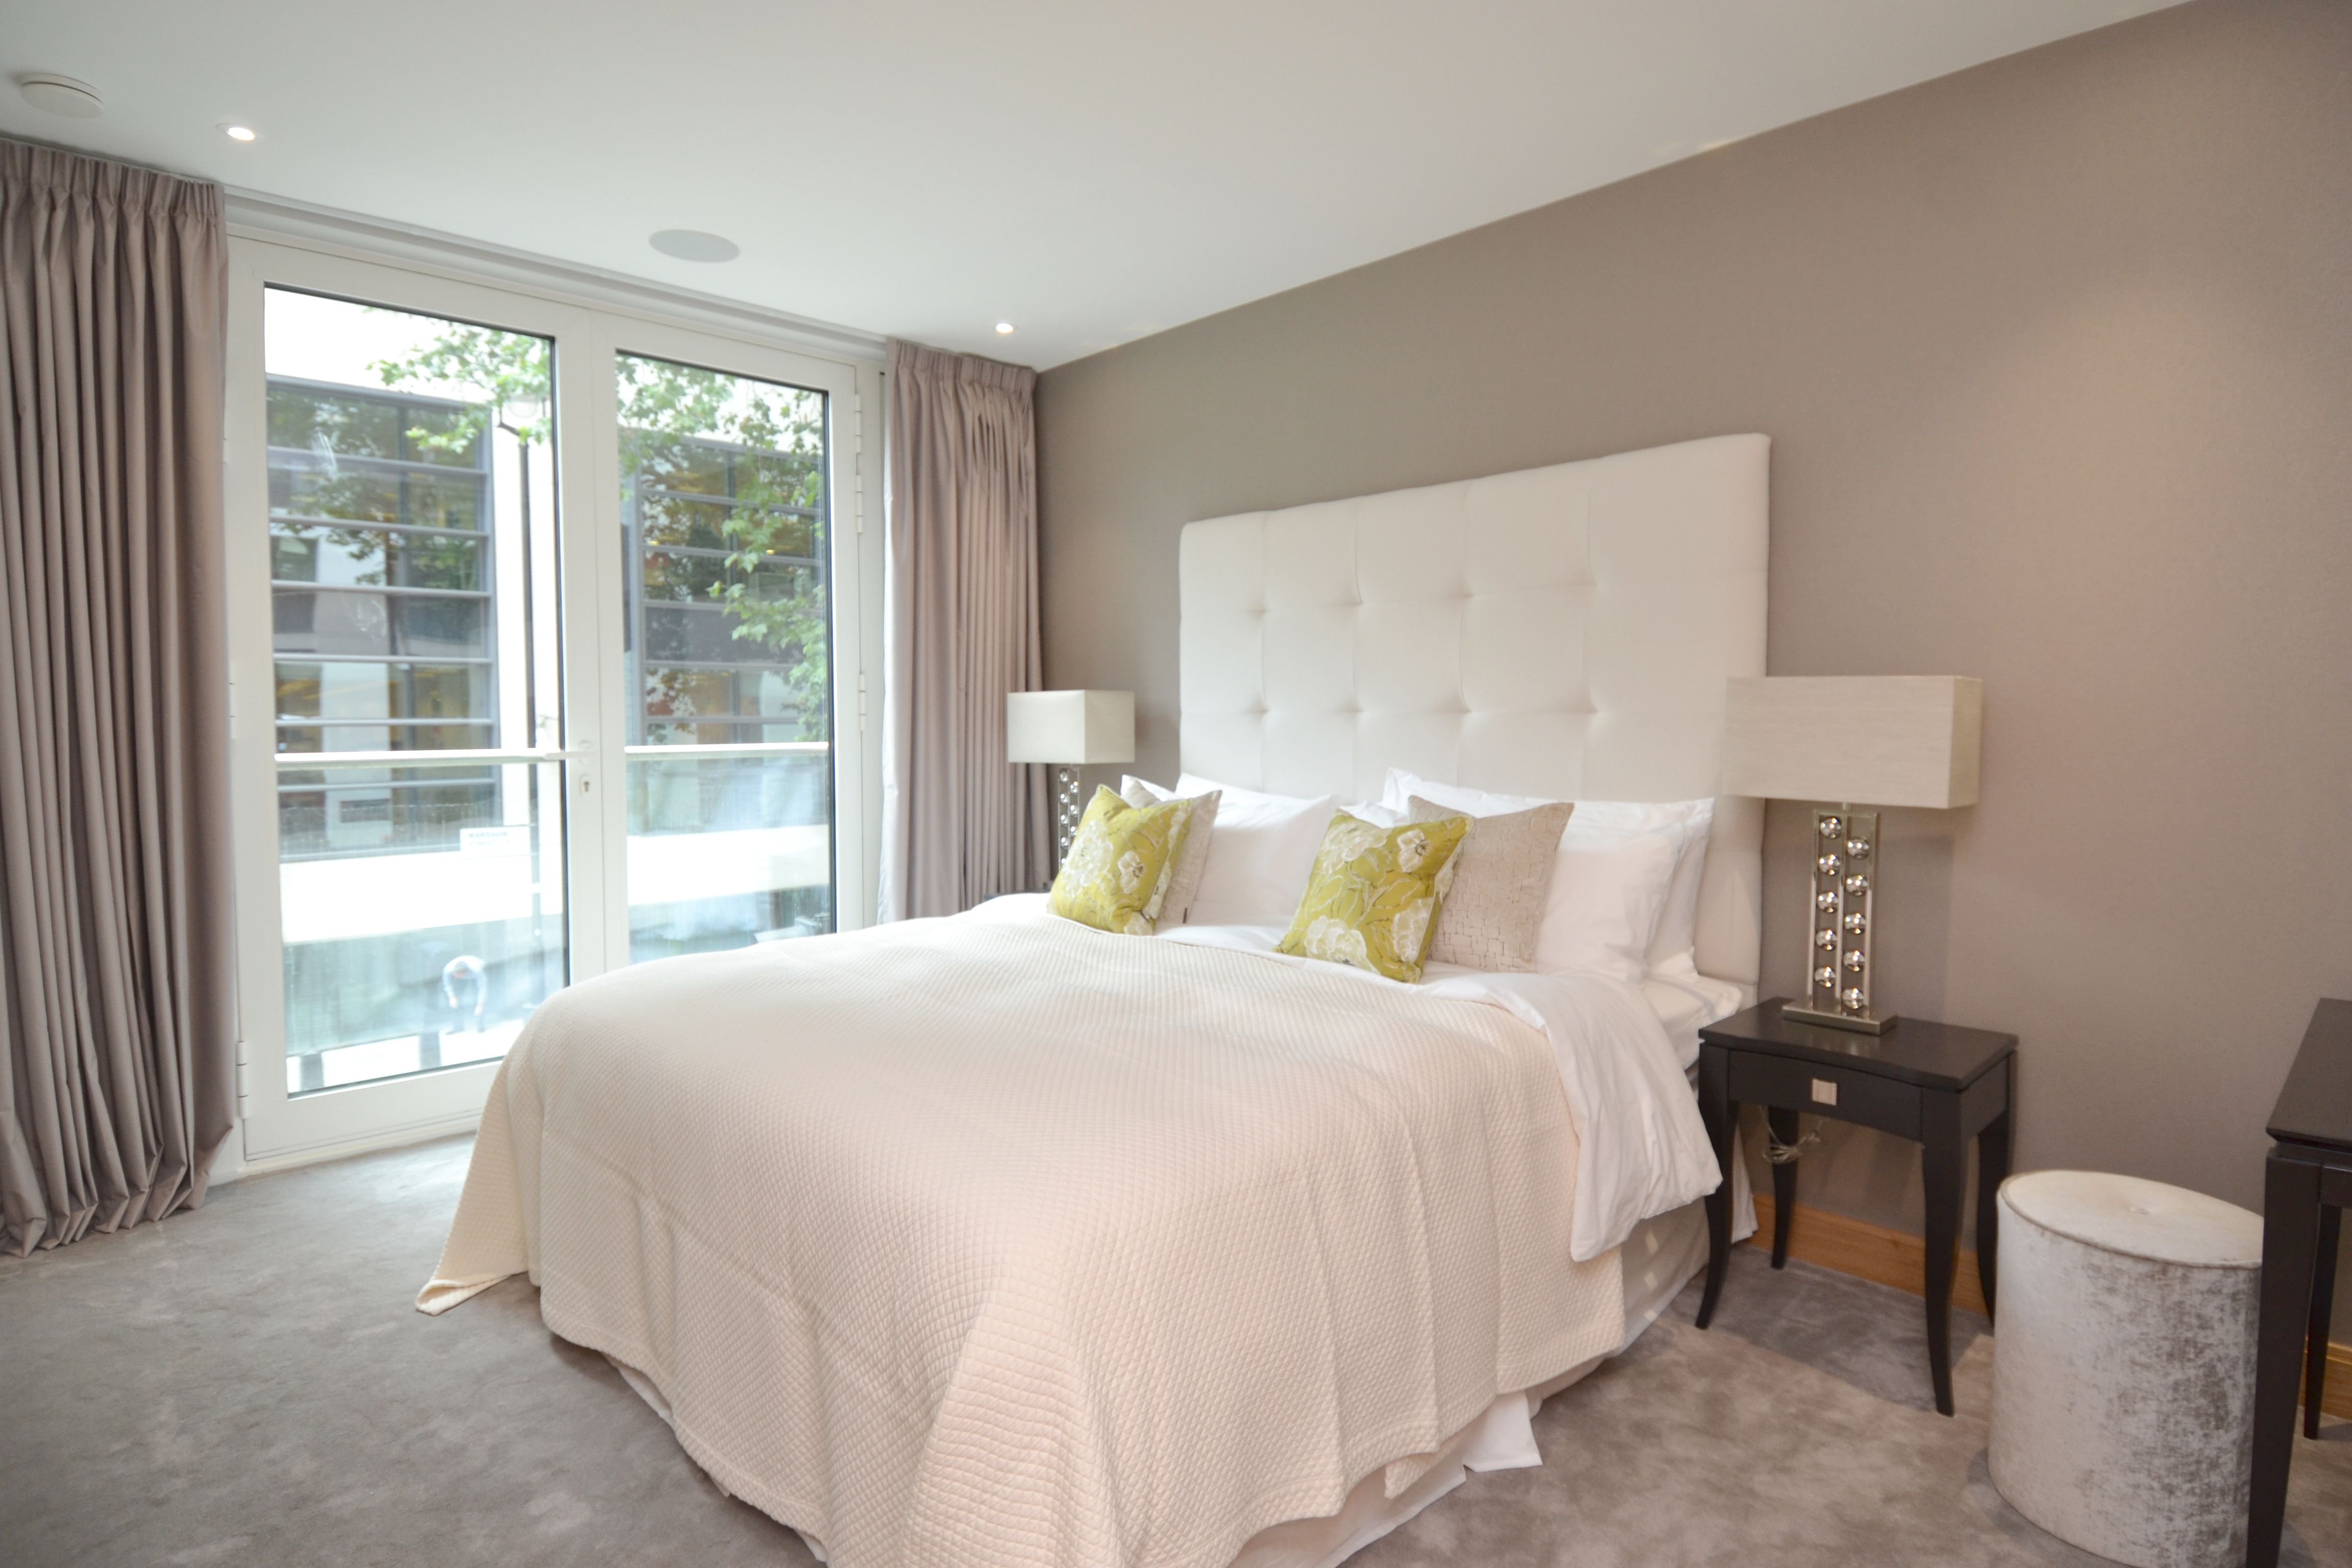 A three bedroom flat to rent in Westminster, SW1 for £